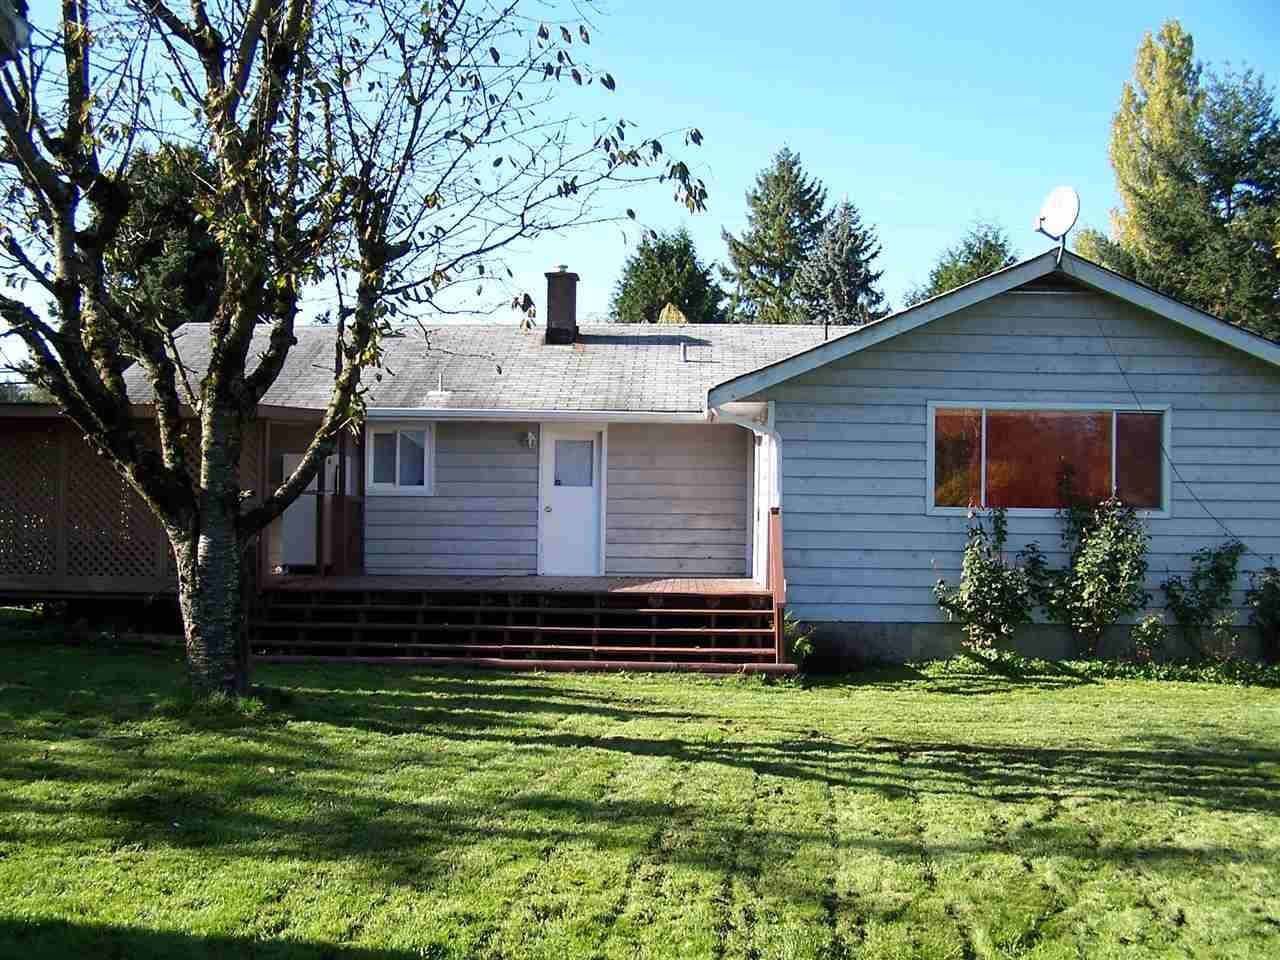 Main Photo: 4038 248 Street in Langley: Salmon River House for sale : MLS®# R2550751